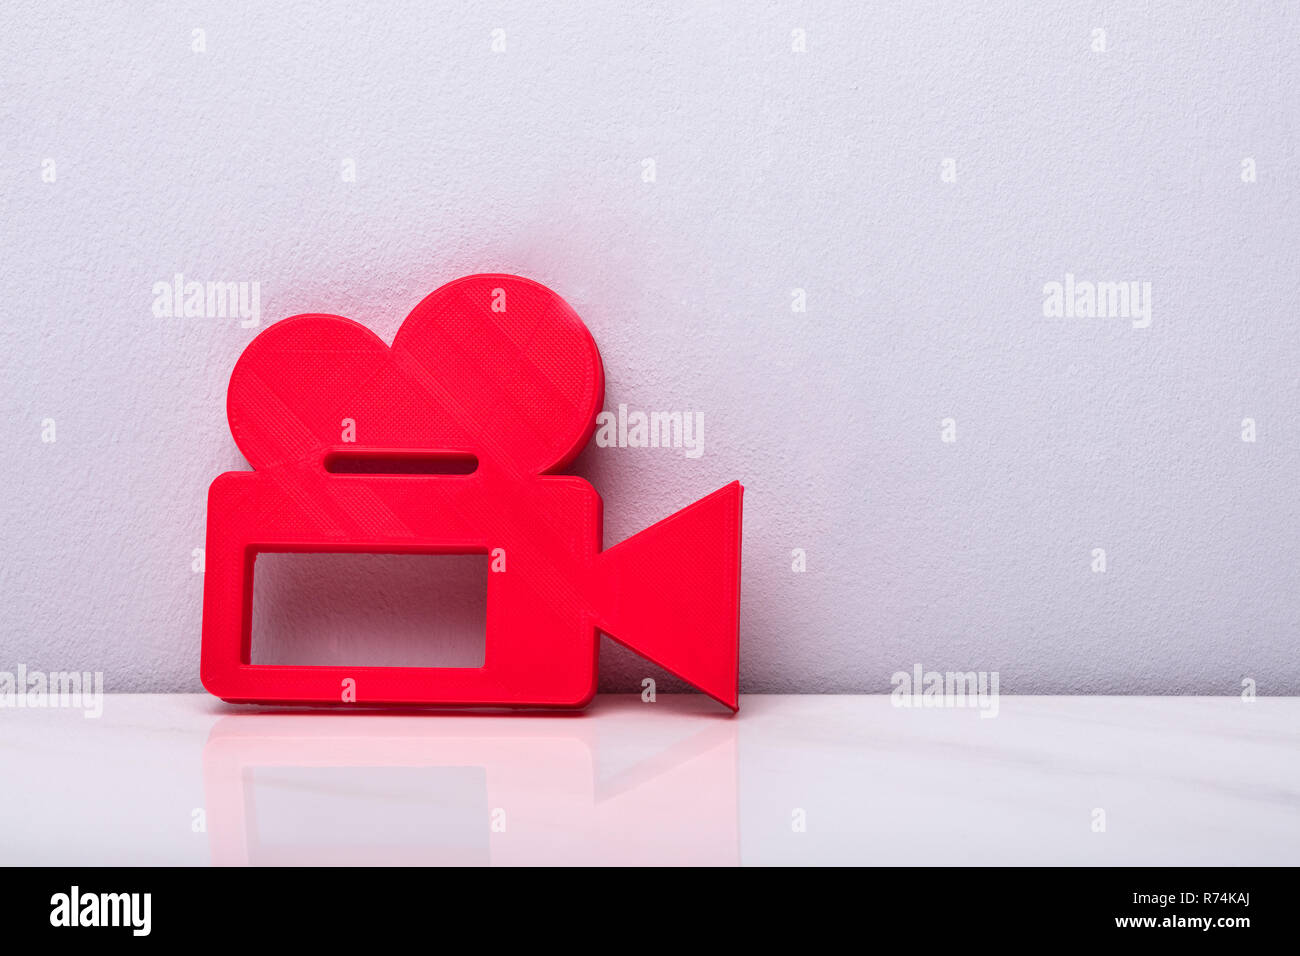 3d Red Video Camera Icon - Stock Image